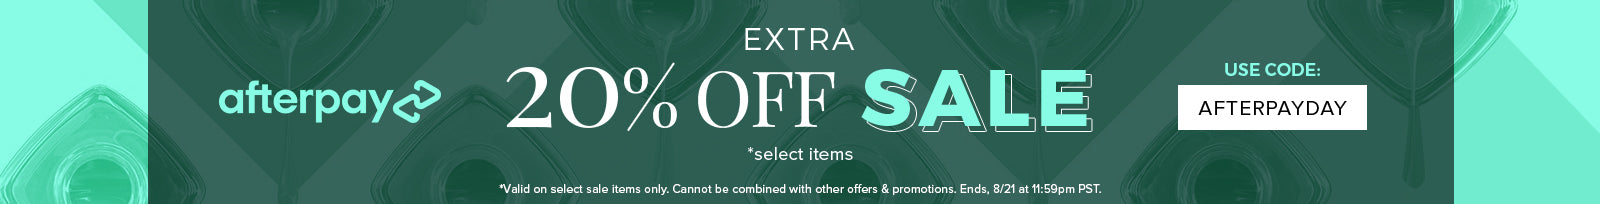 Afterpay Day - Extra 20% off Sale